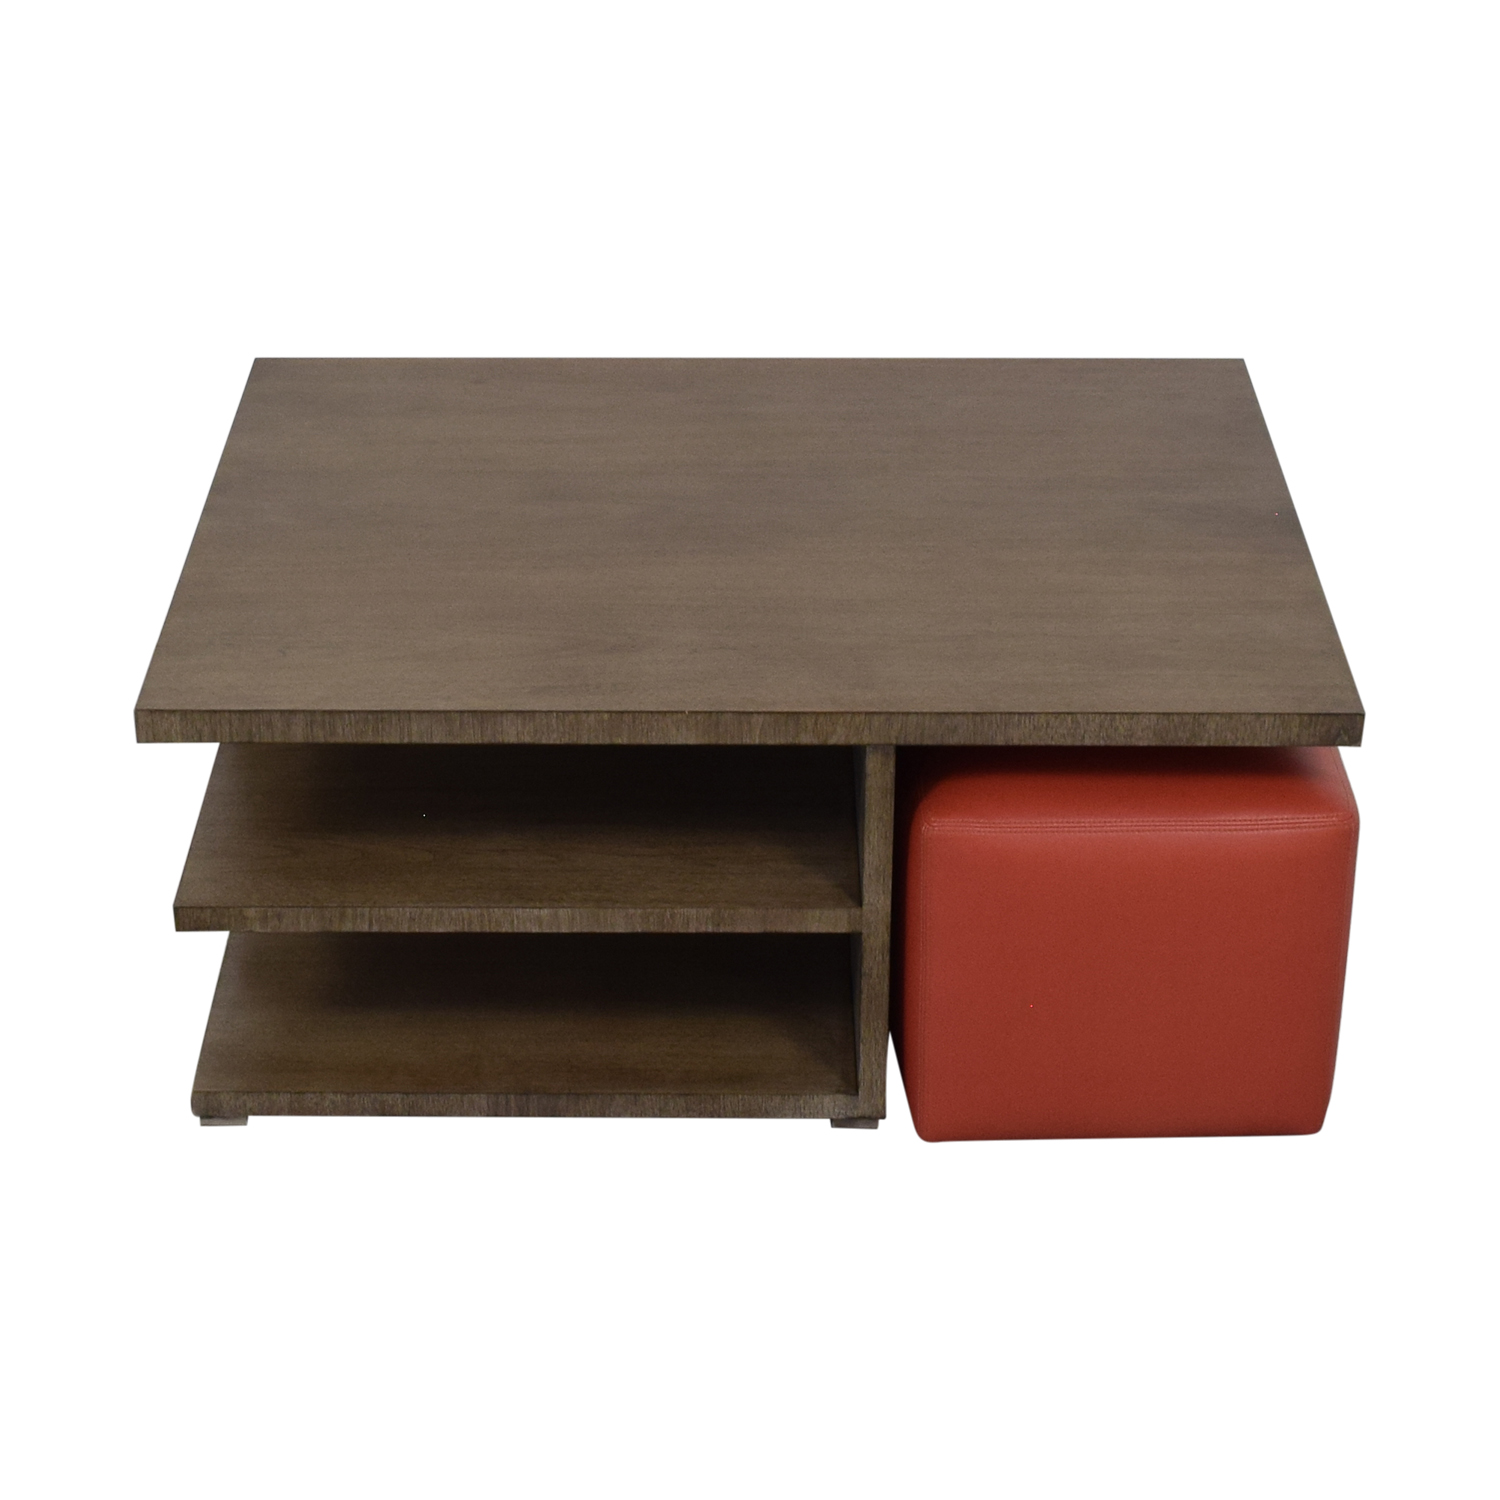 Charmant 71% OFF   CTH Sherrill Occasional Furniture CTH Sherrill Occasional  Furniture Cocktail Table With Ottomans / Tables